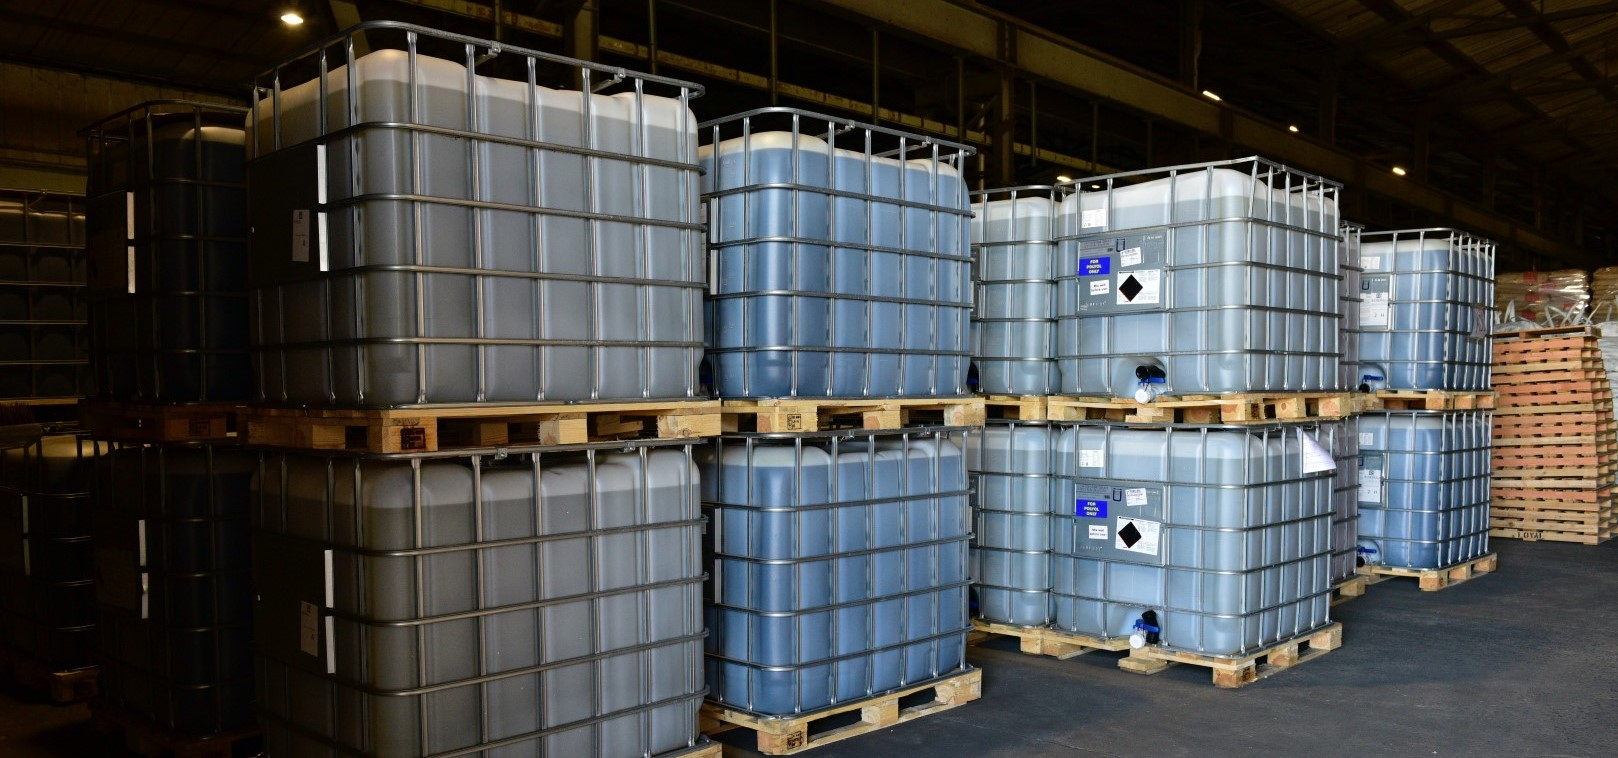 Storage of polymer/gas containers in warehouse